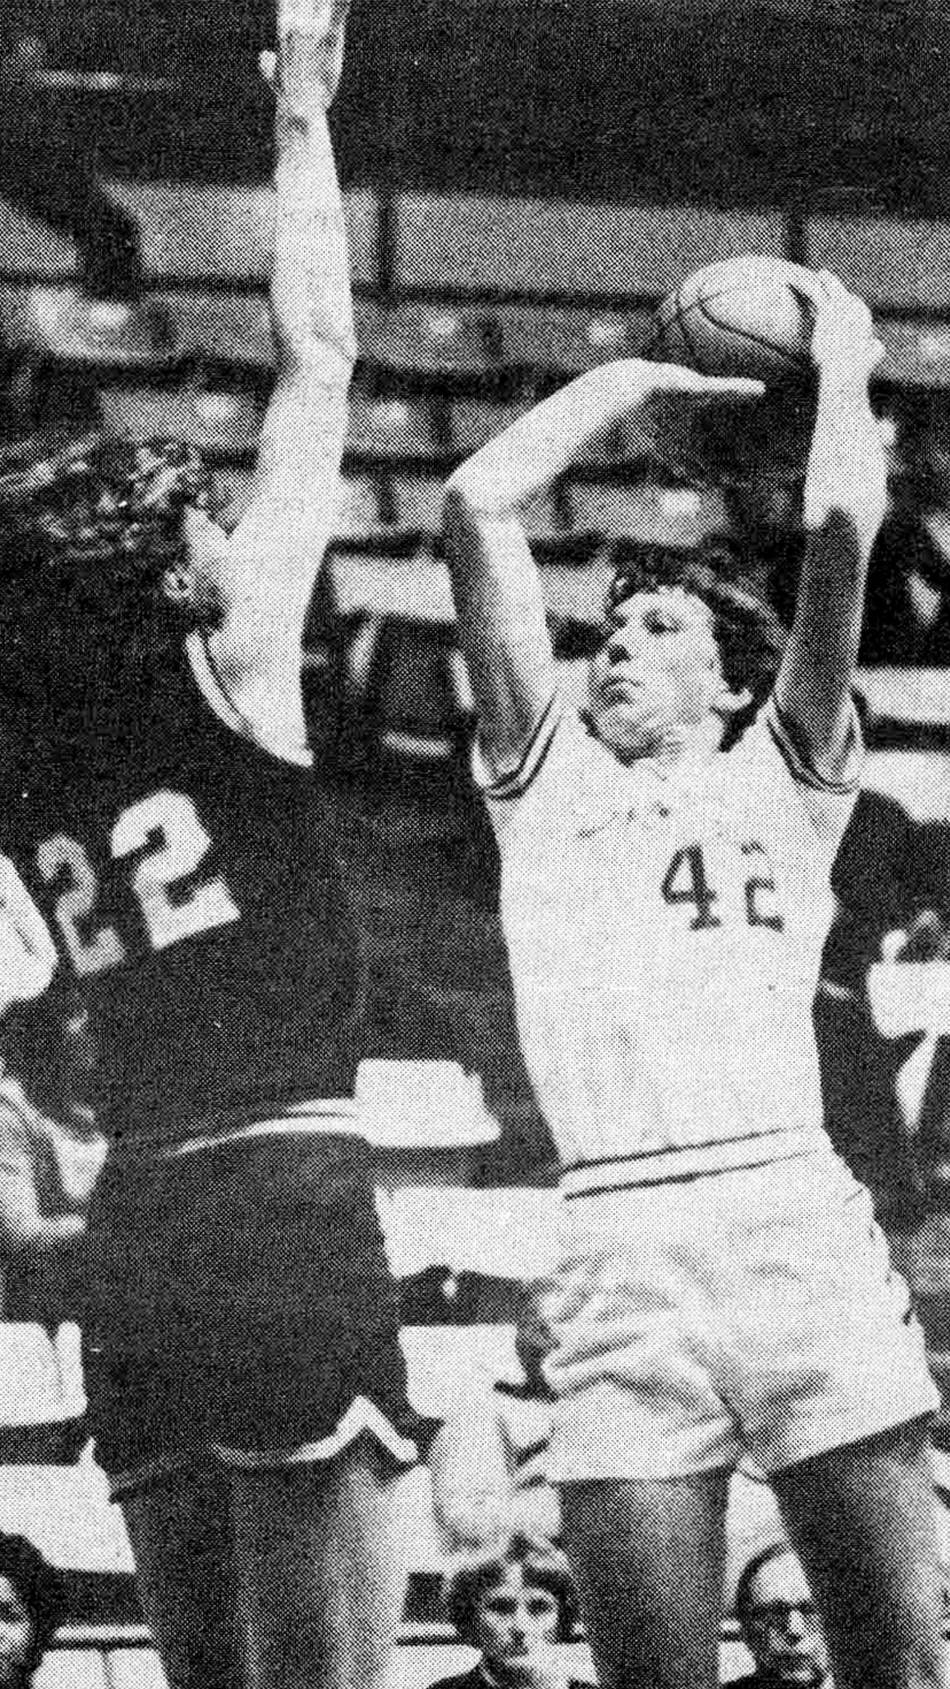 Newspaper photo of Jeanette Tendai shooting a basketball